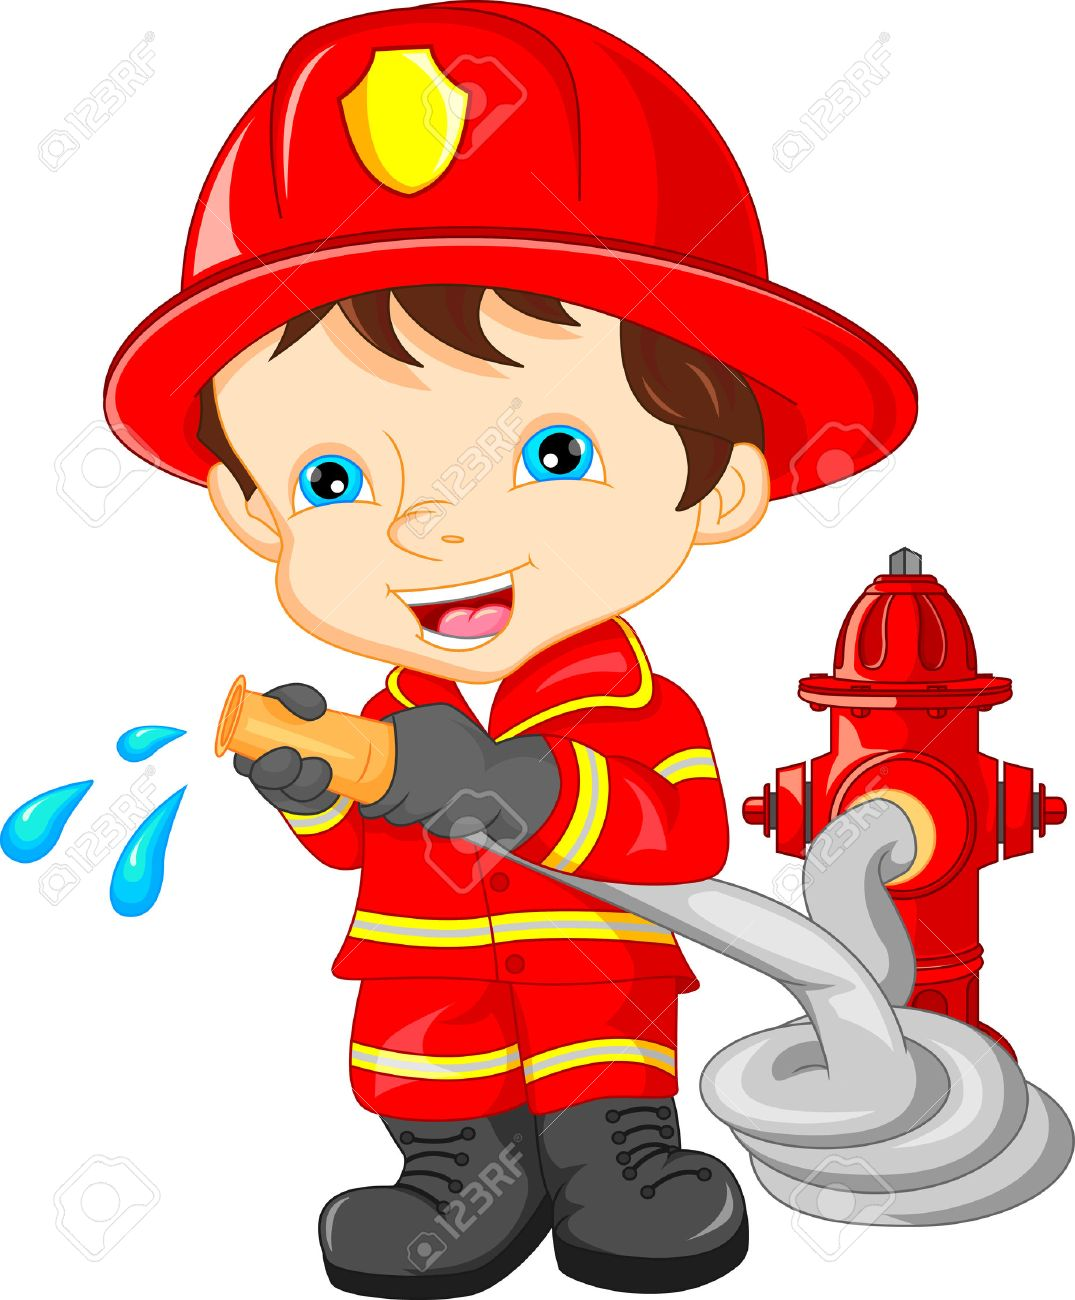 young boy wearing firefighter